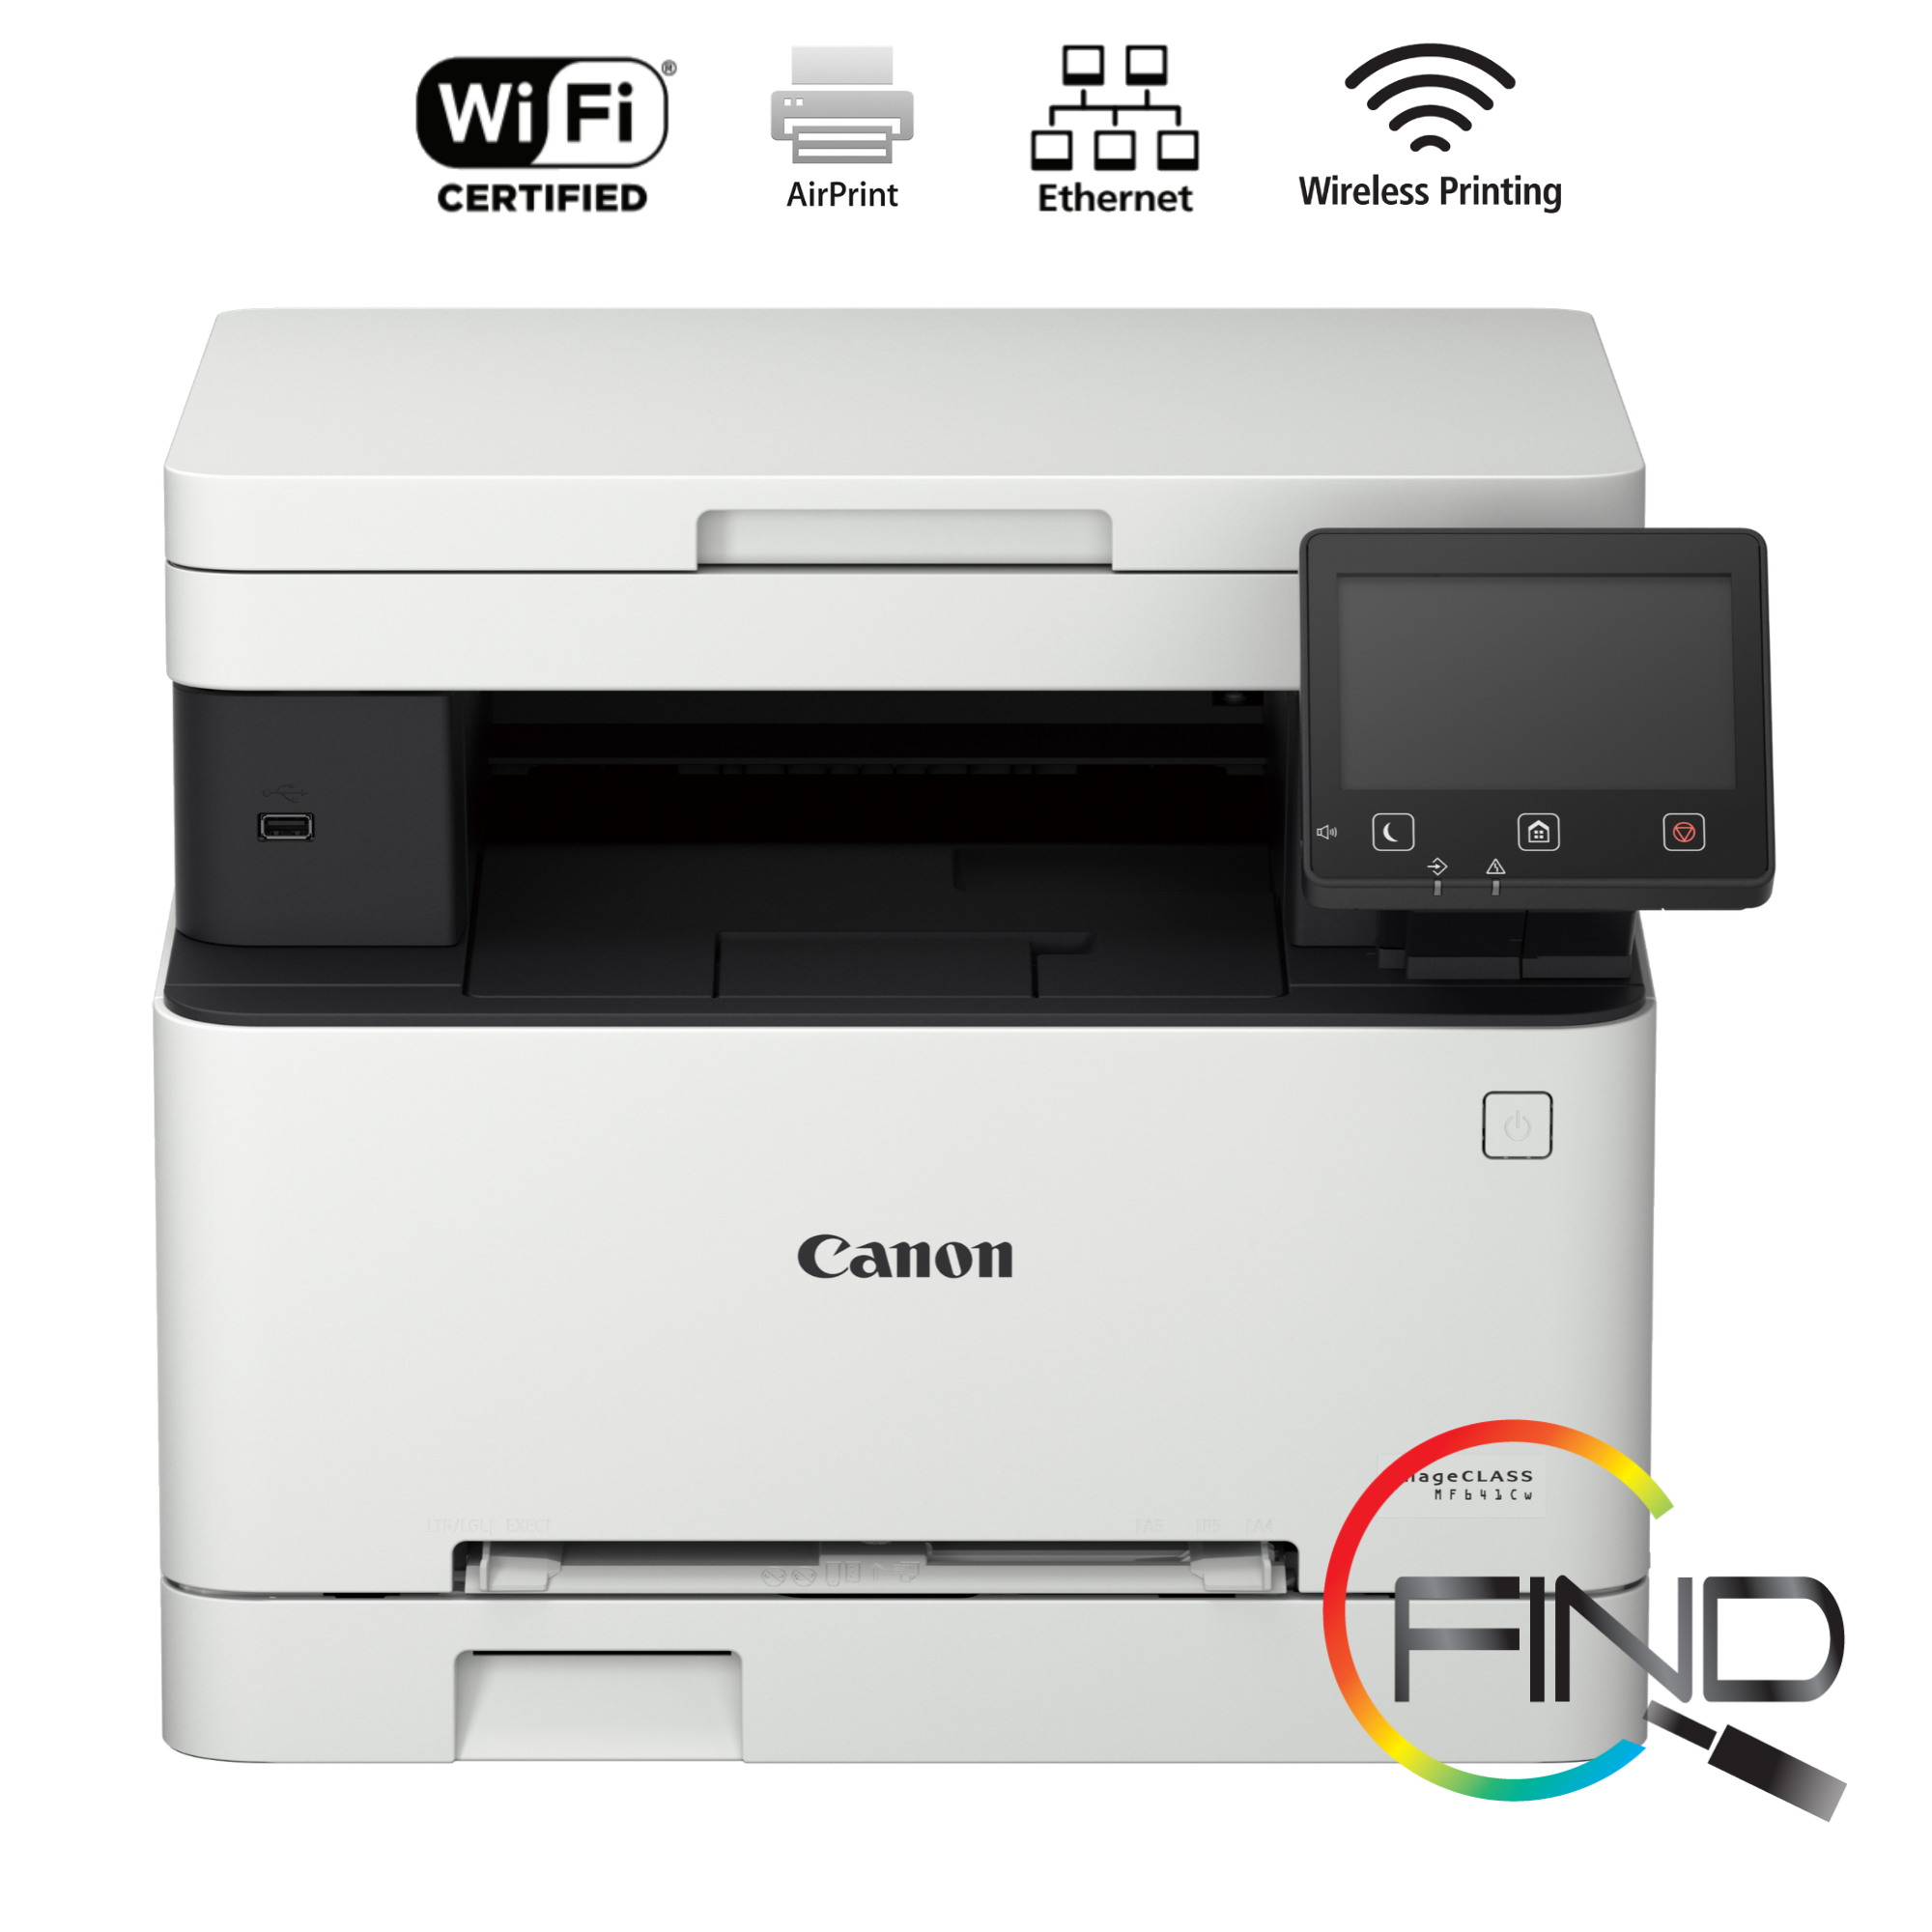 CANON imageCLASS MF641Cw Compact and Efficient 3-in-1 Colour Multifunction Laser Printer